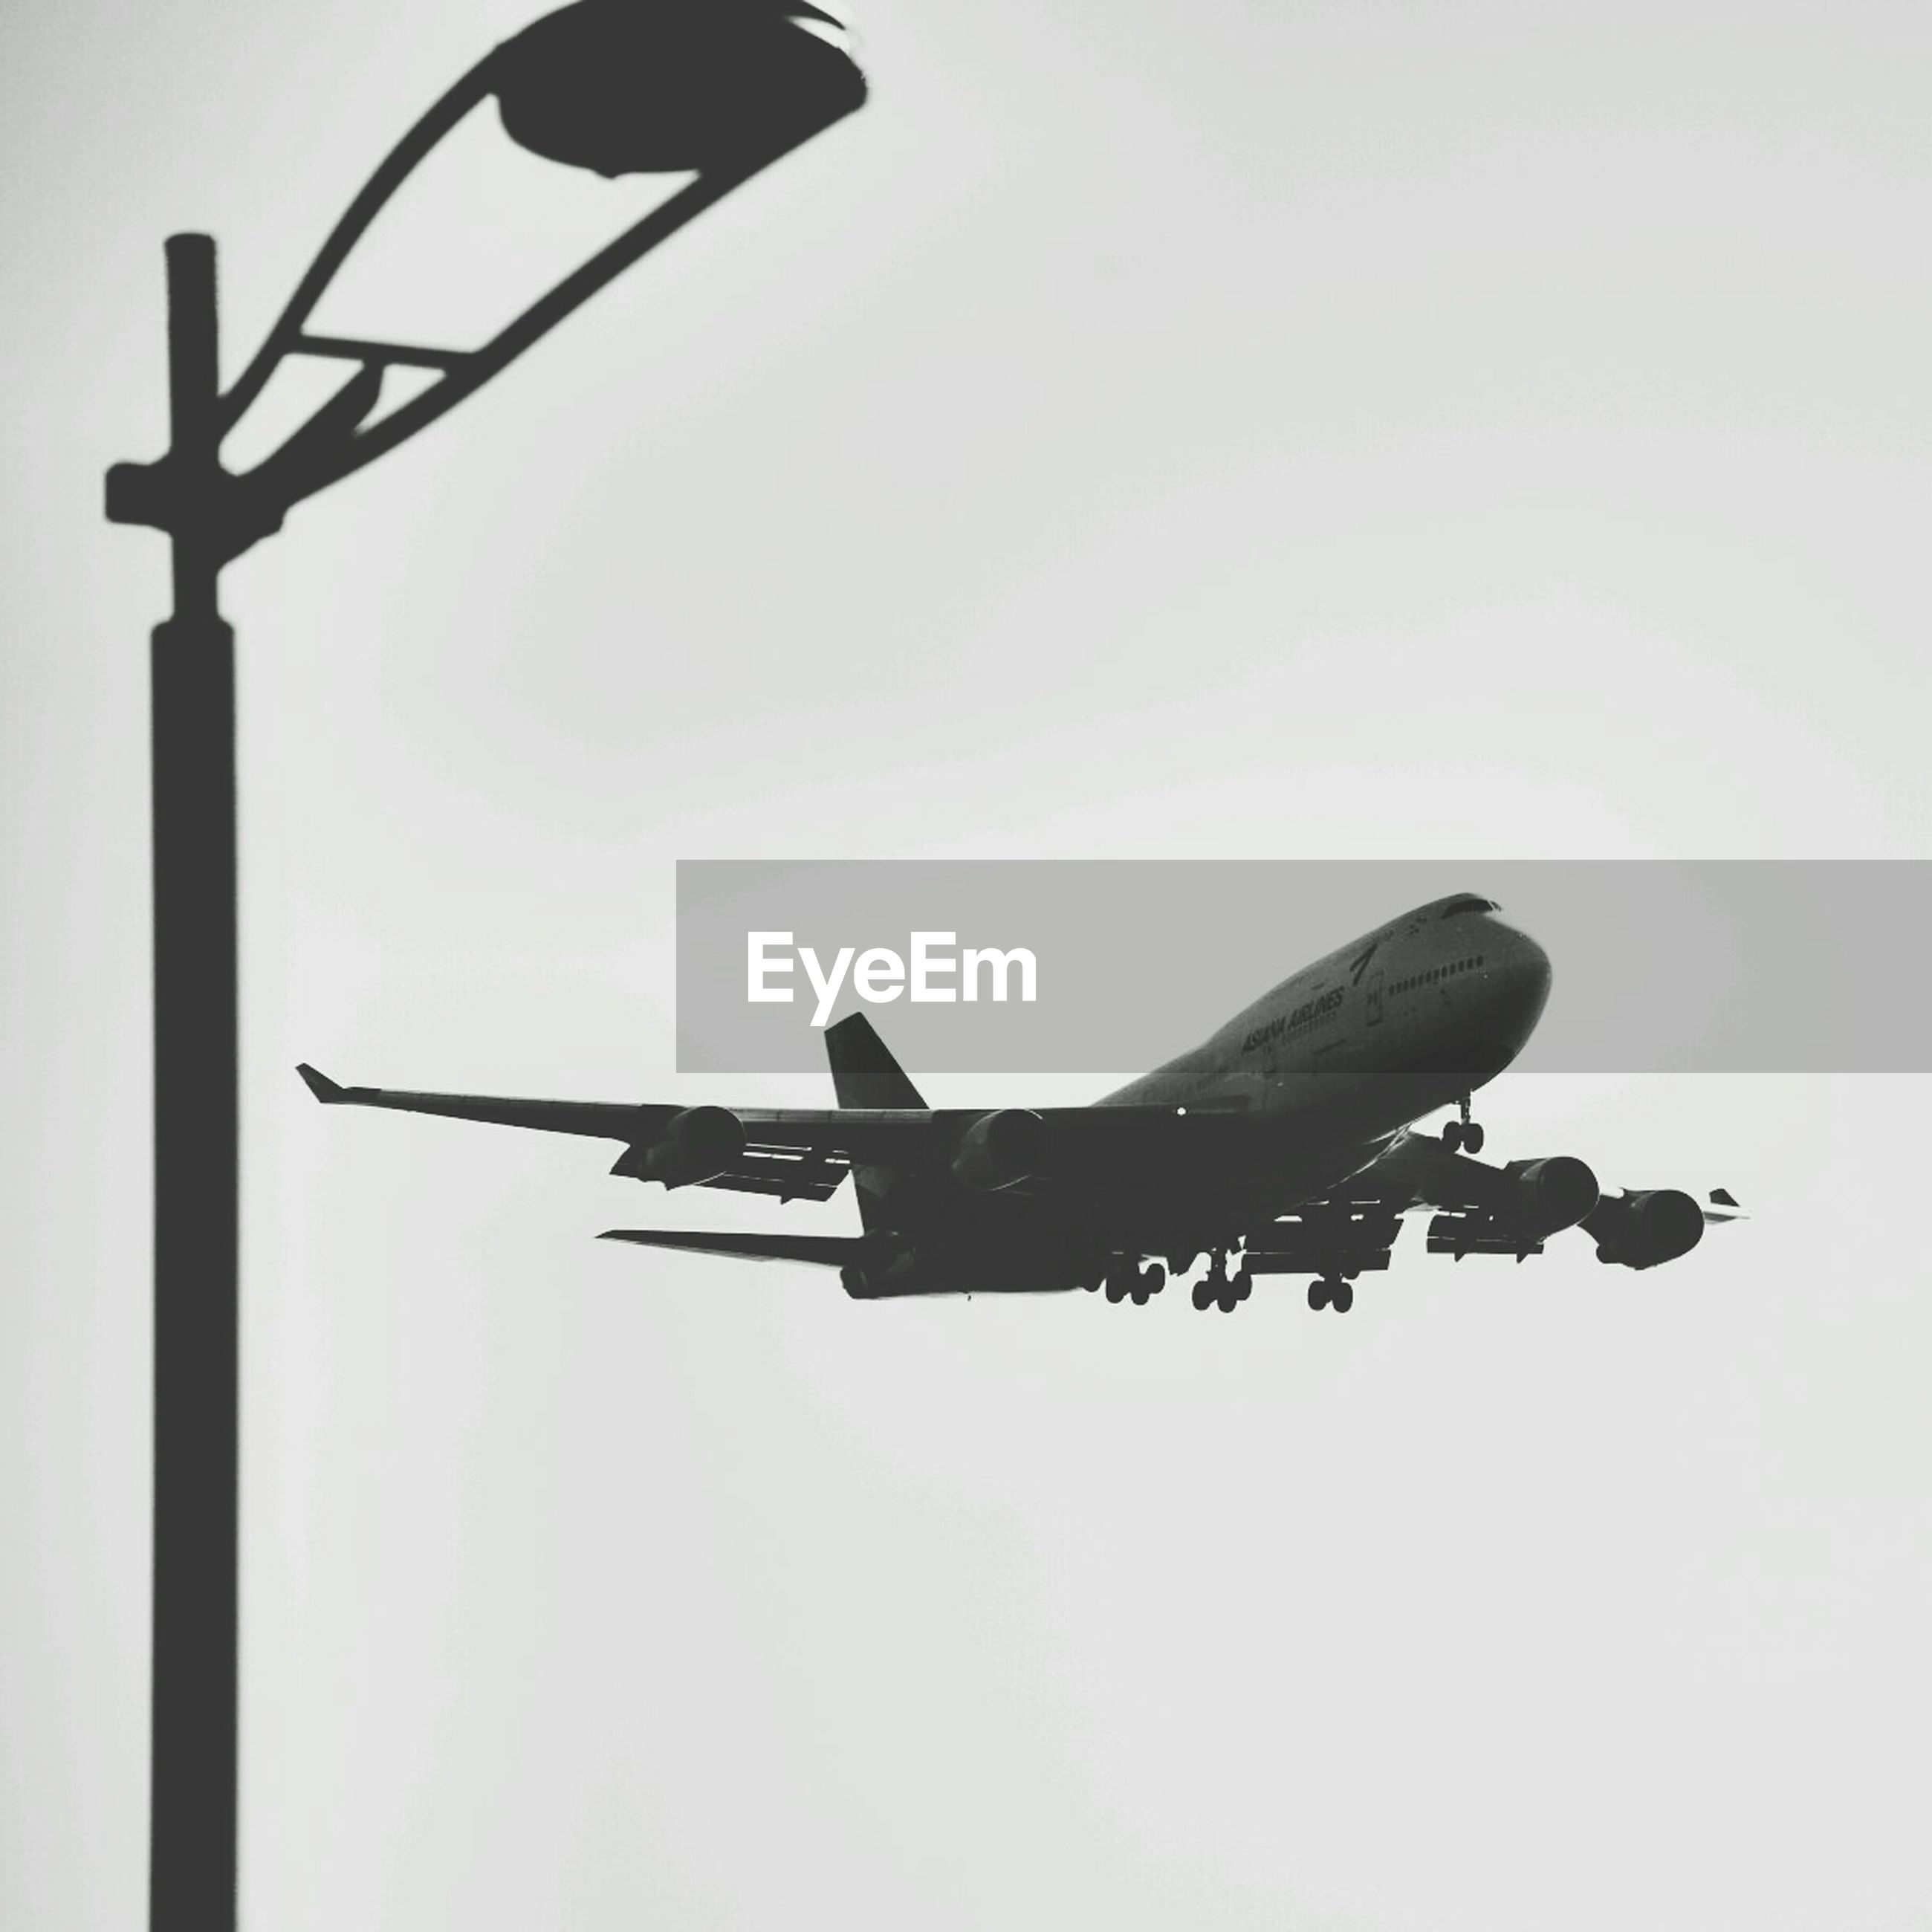 View of airplane in sky